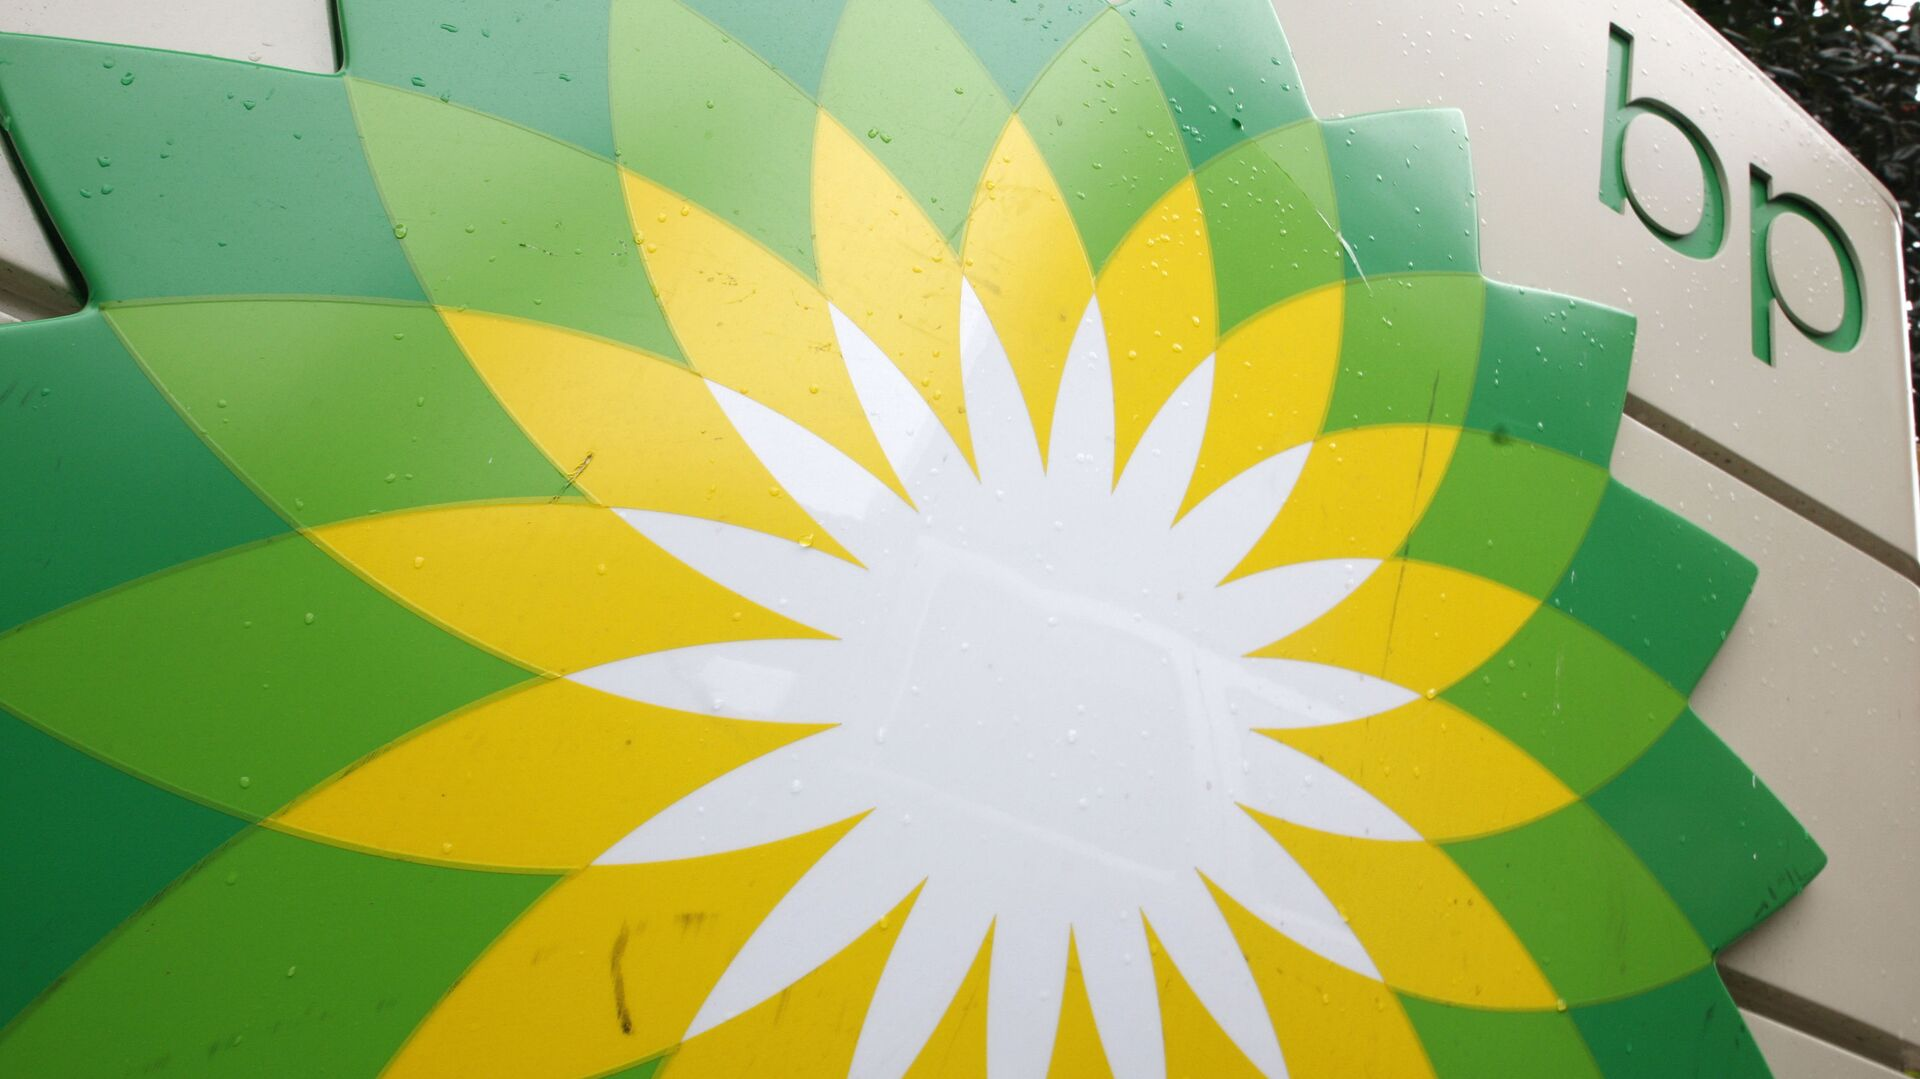 FILE - In this Oct. 25, 2007 file photo, the BP (British Petroleum) logo is seen at a gas station in Washington. BP will spend $7 billion to buy exploration rights to areas in the Gulf of Mexico, offshore Brazil and Canada owned by Devon Energy - Sputnik International, 1920, 23.09.2021